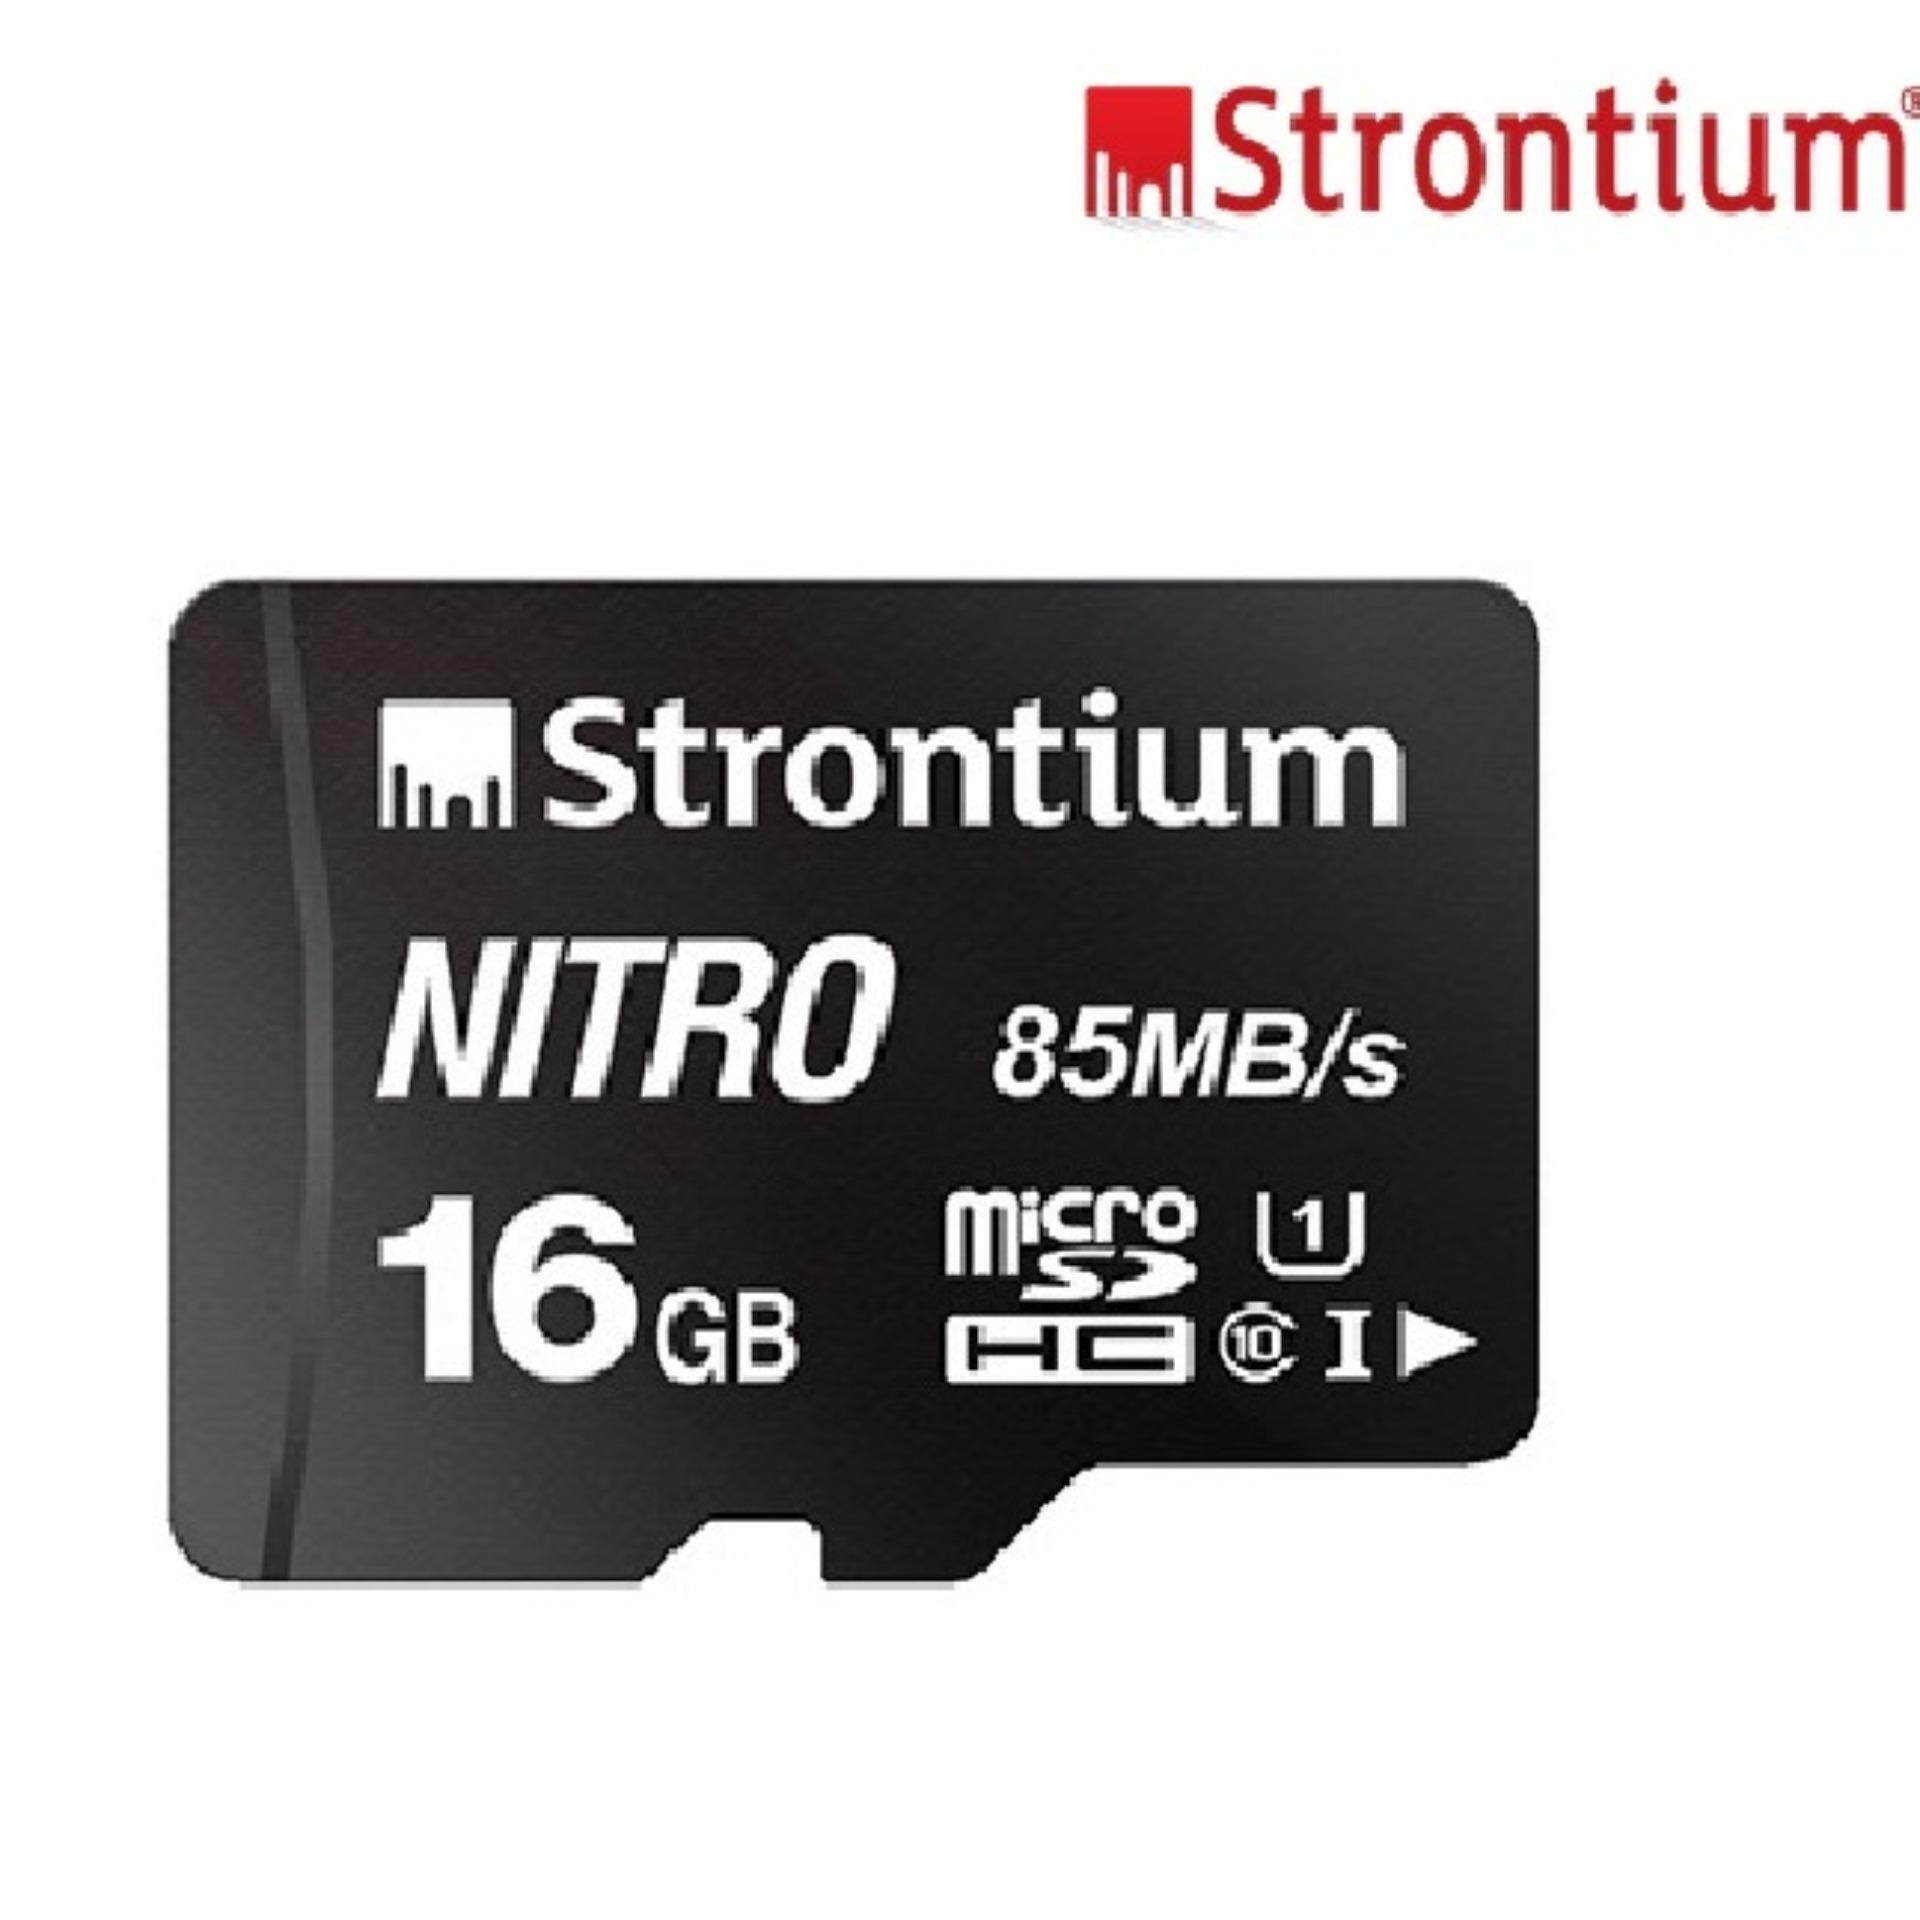 16gb Strontium Nitron 85mb/s Original Memory Card Class 10 Mirco Sdhc Sd Card Ultra Fast Speed Transfer By Dawell.